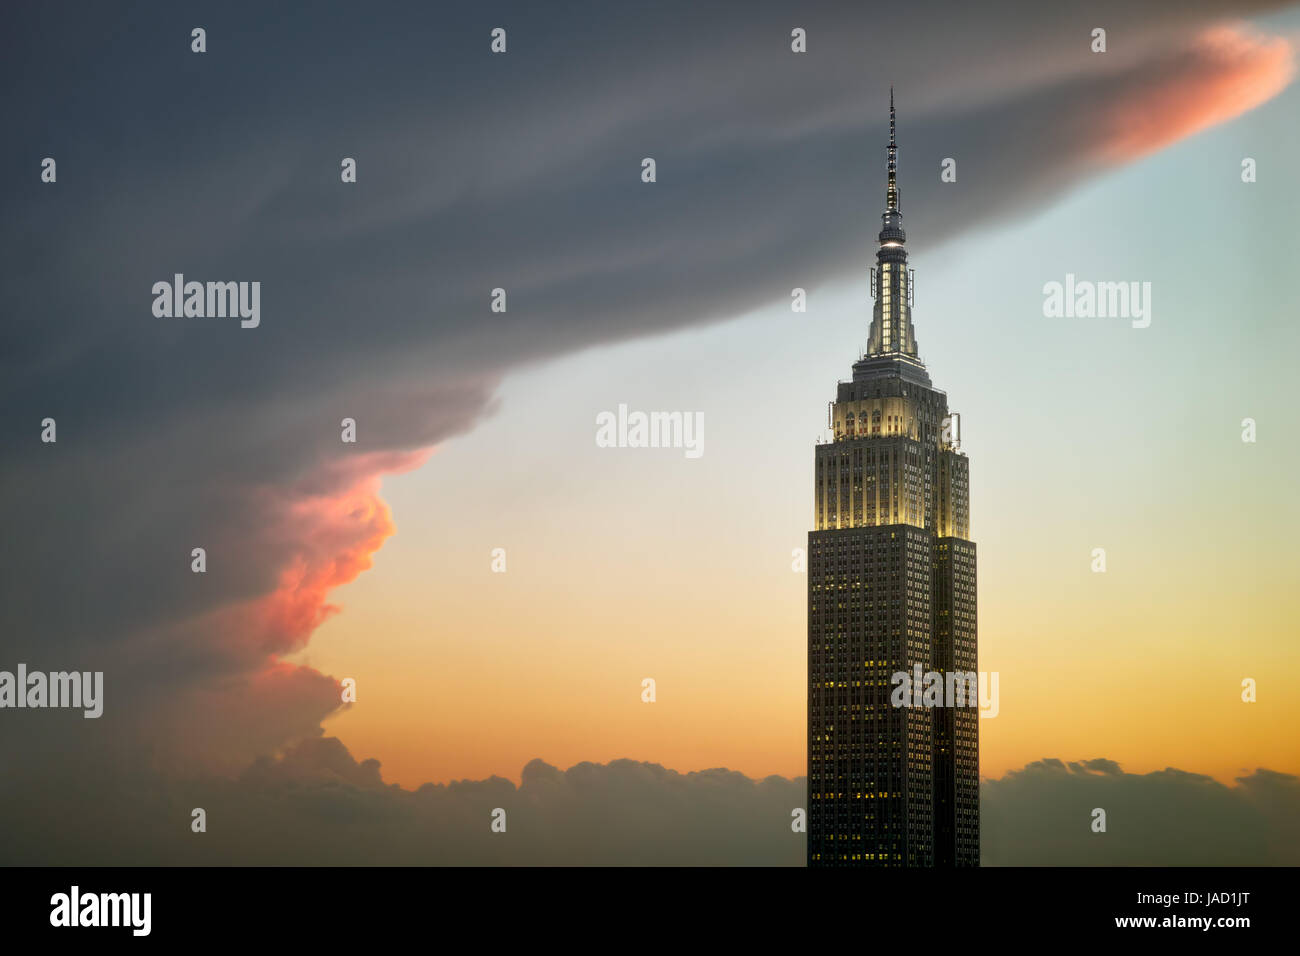 Storm clouds encircling Empire State Building on a colorful sunset - May 31, 2017, 40th Street, New York City, NY, - Stock Image